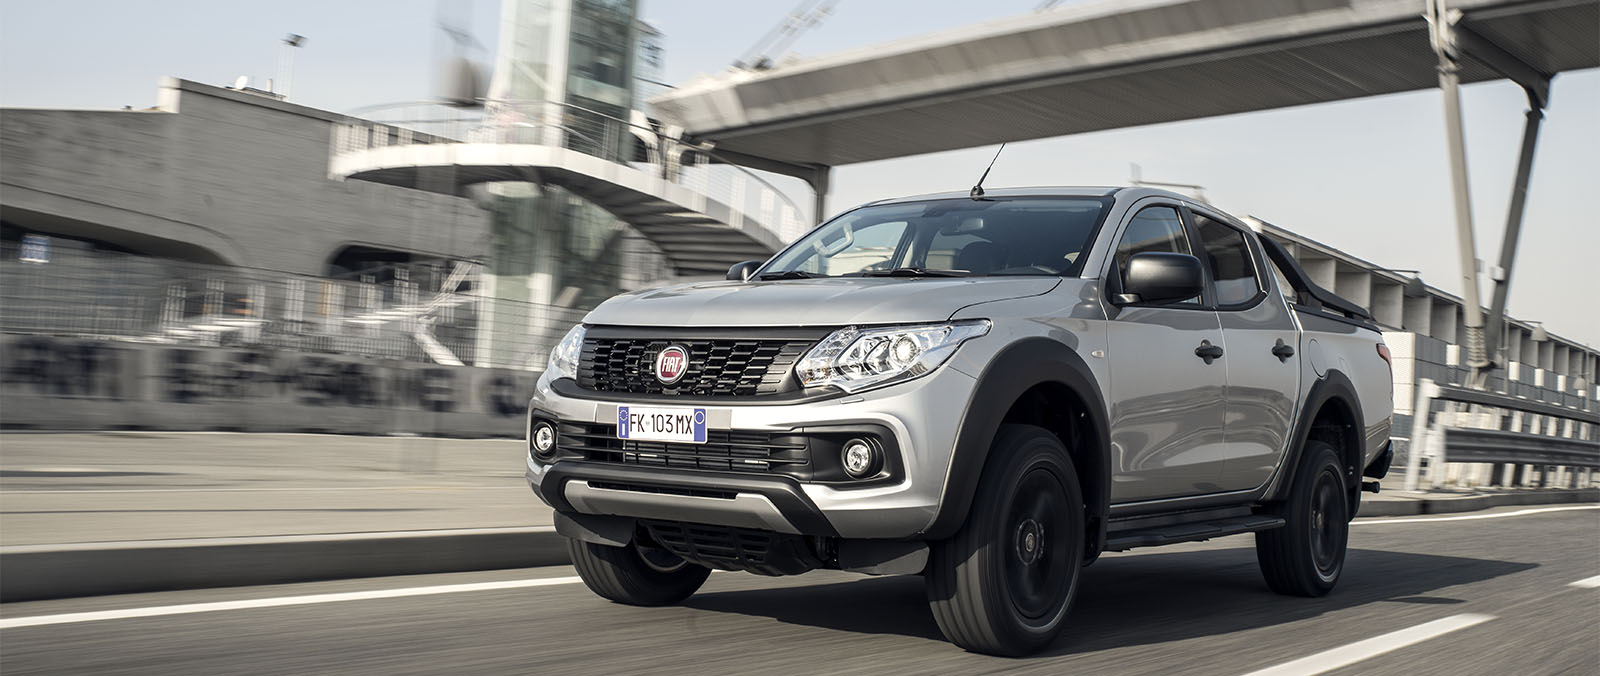 Fiat Fullback Cross ruige pick-up